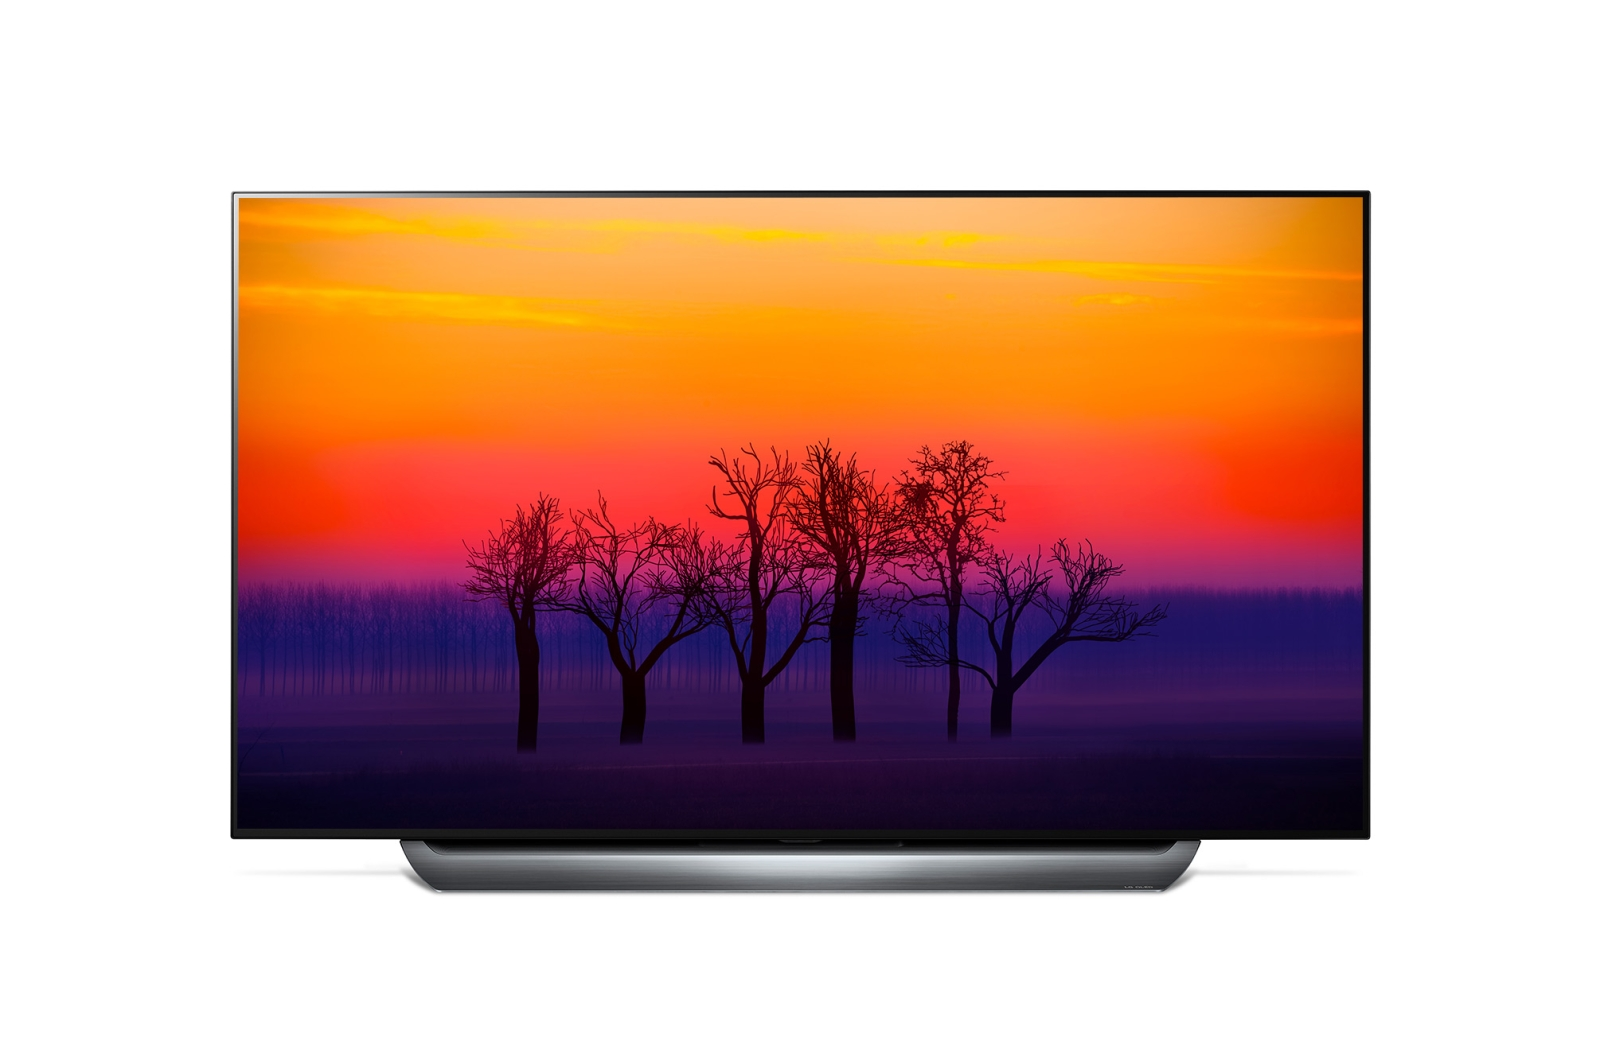 Телевизор LG OLED55C8PLA OLED 55 Titanium, 16:9, 3840x2160, Smart TV, USB, 4xHDMI, RJ45, WiFi, DVB-T, T2, C, S, S2 smart video door phone intercom 720p wifi doorbell with rfid